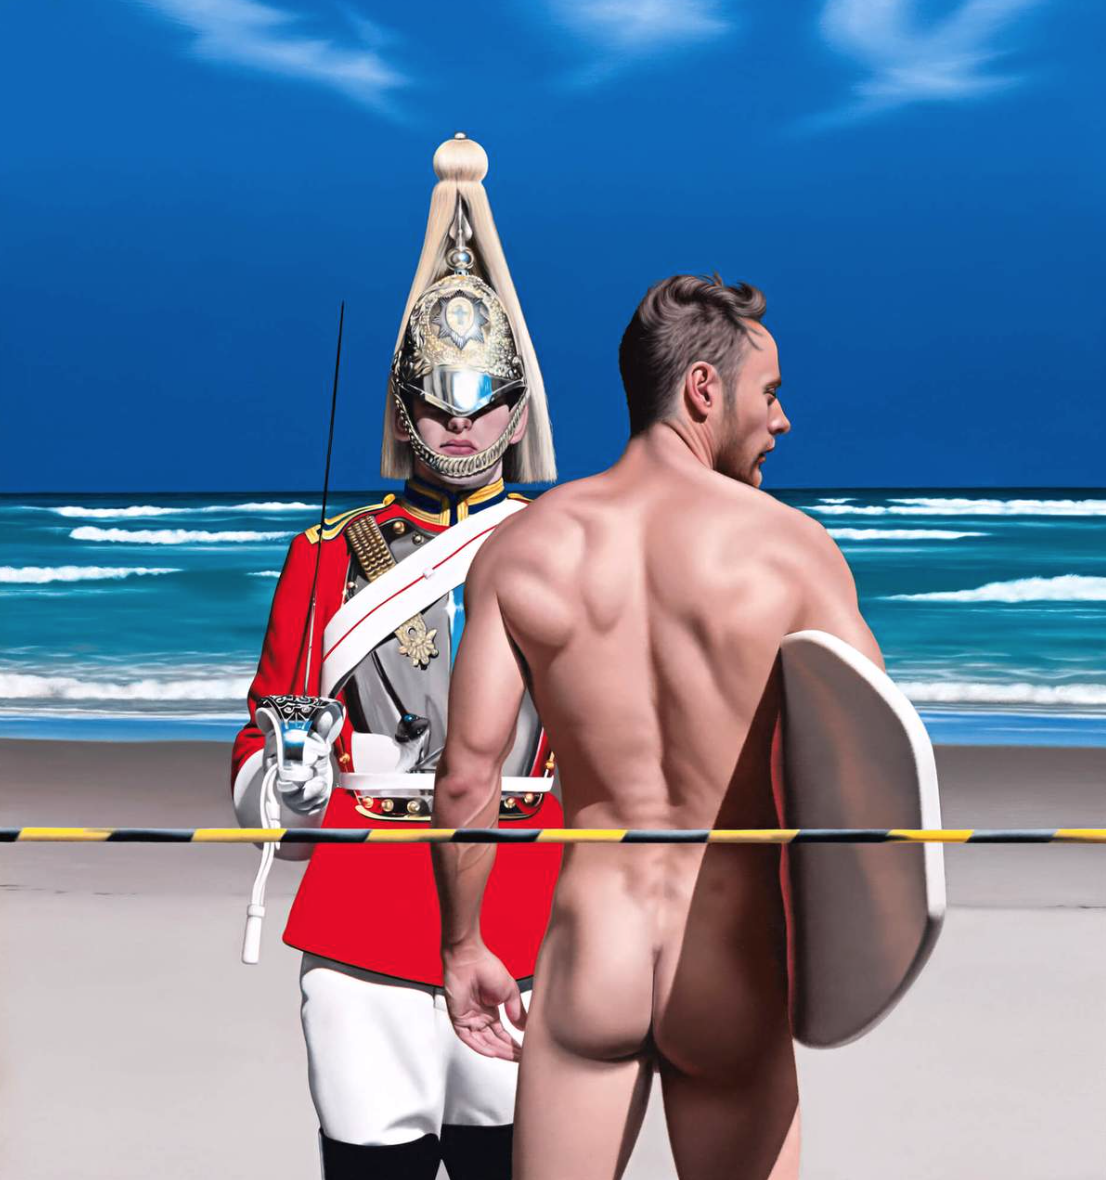 Two Life Guards by Ross Watson